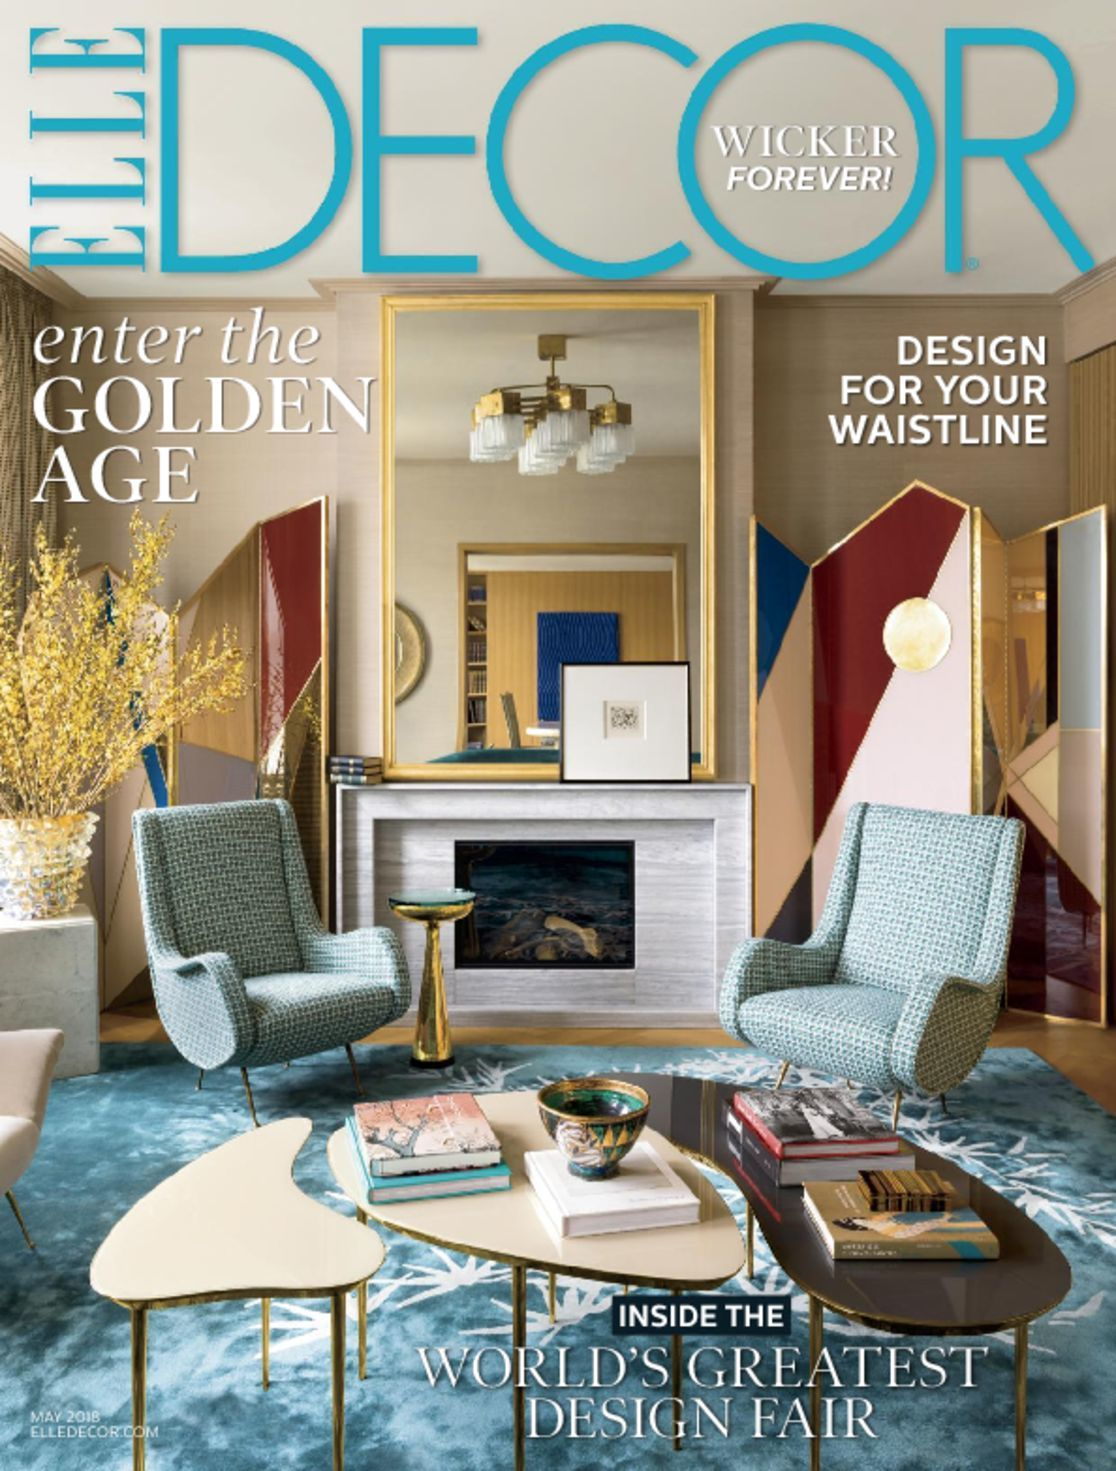 Decoration Elle Elle Decor Magazine Home Decorating Ideas Discountmags